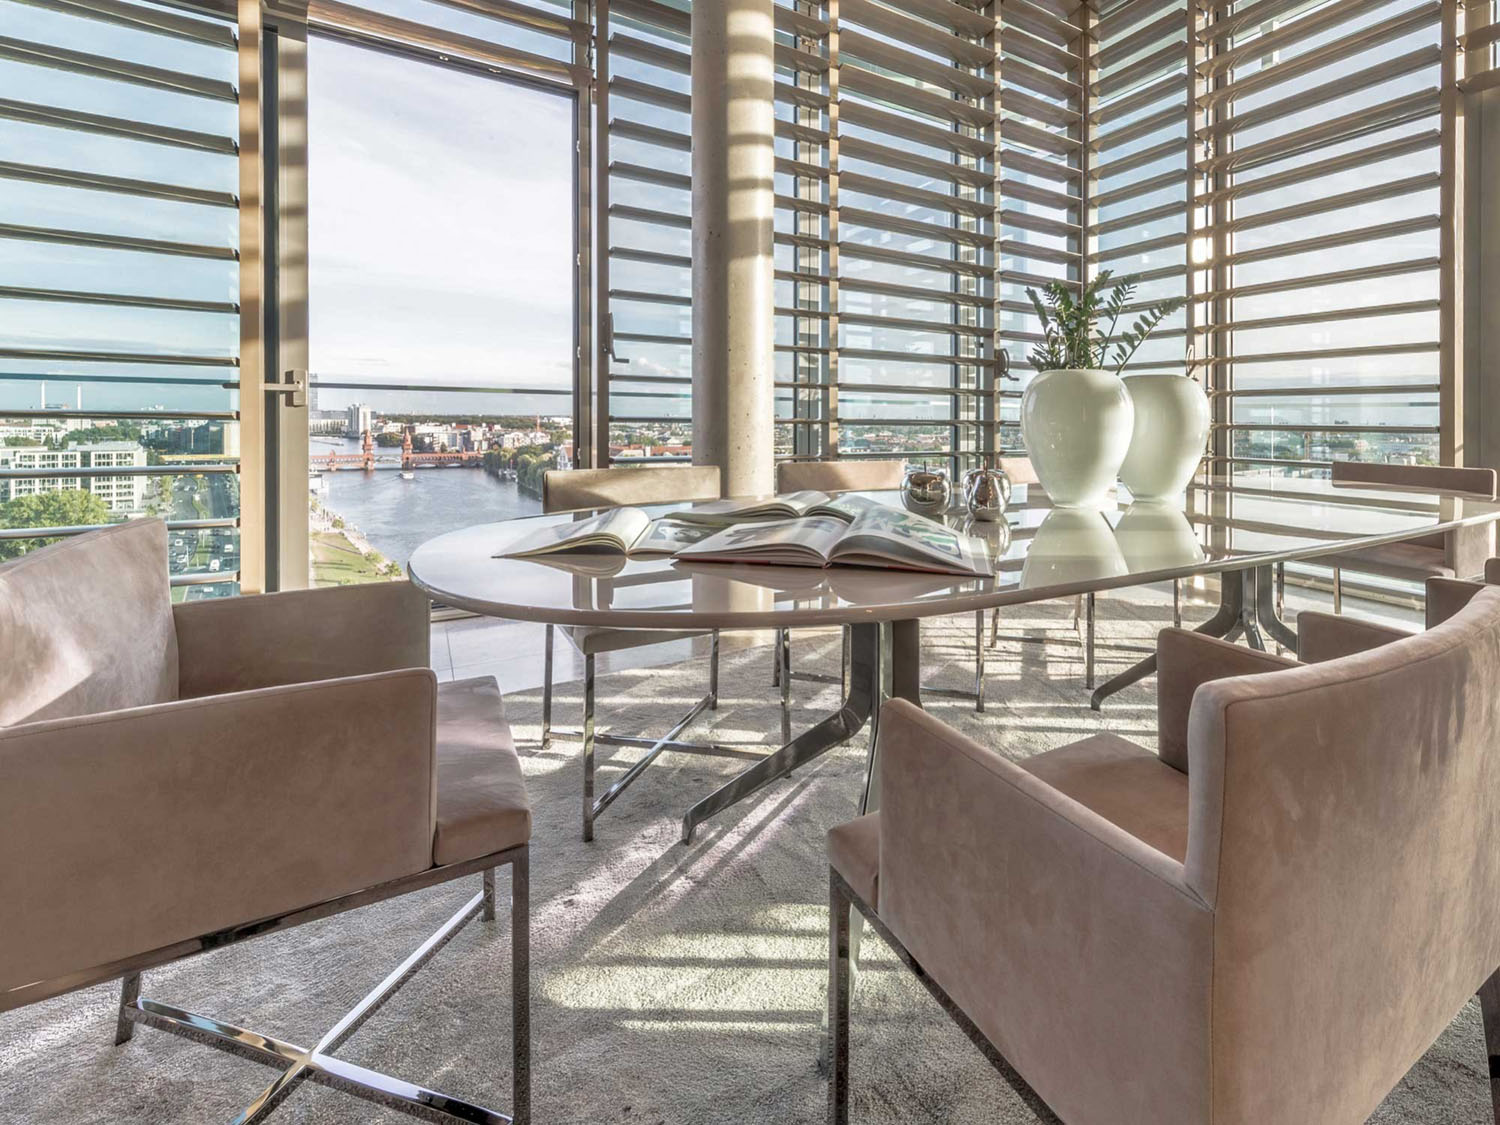 Penthouse Berlin berlin riverside penthouse apartment with panoramic views of the